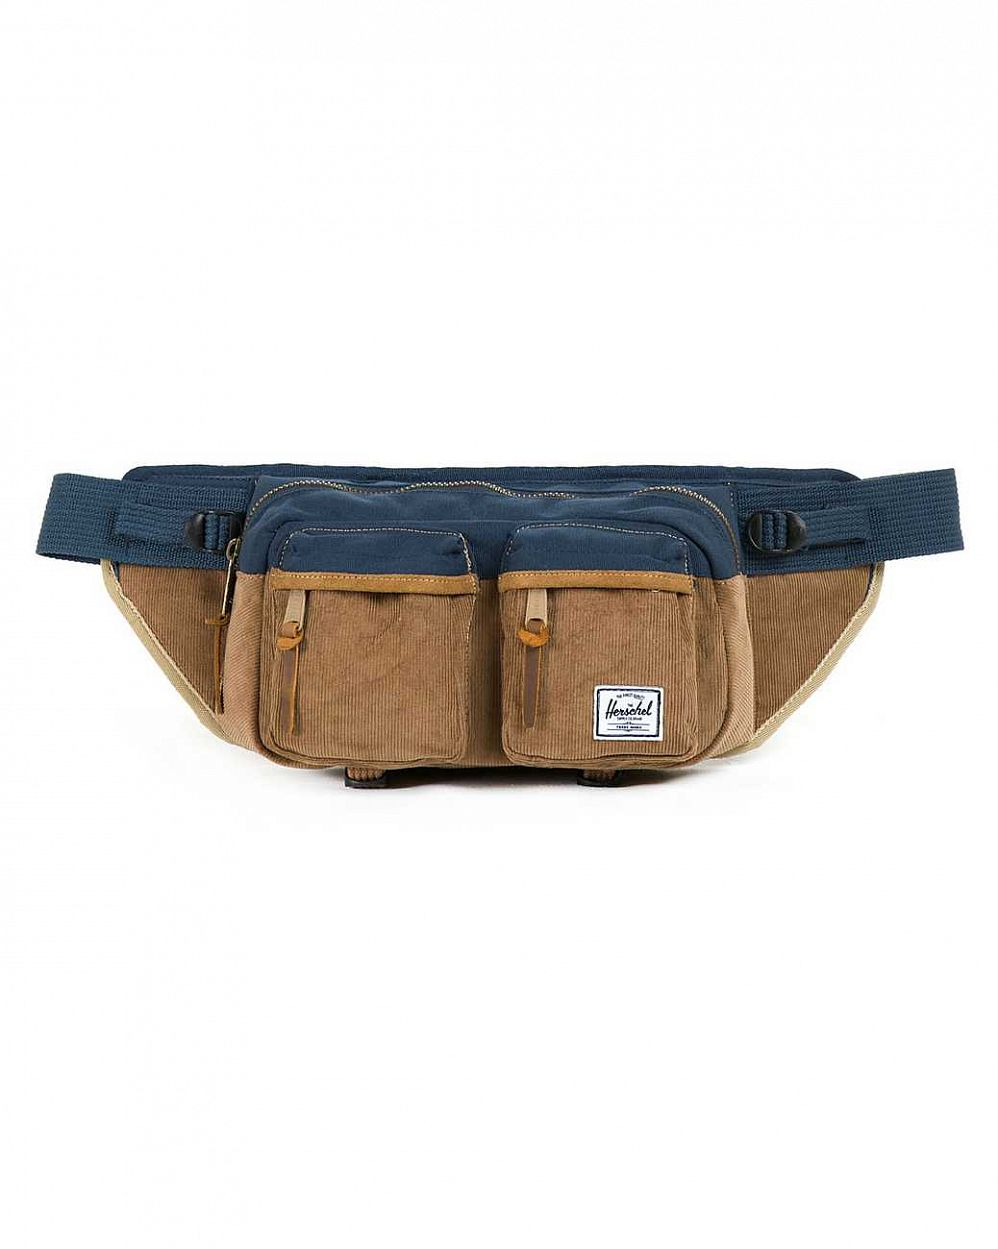 Сумка поясная Herschel Eighteen Navy Cord отзывы